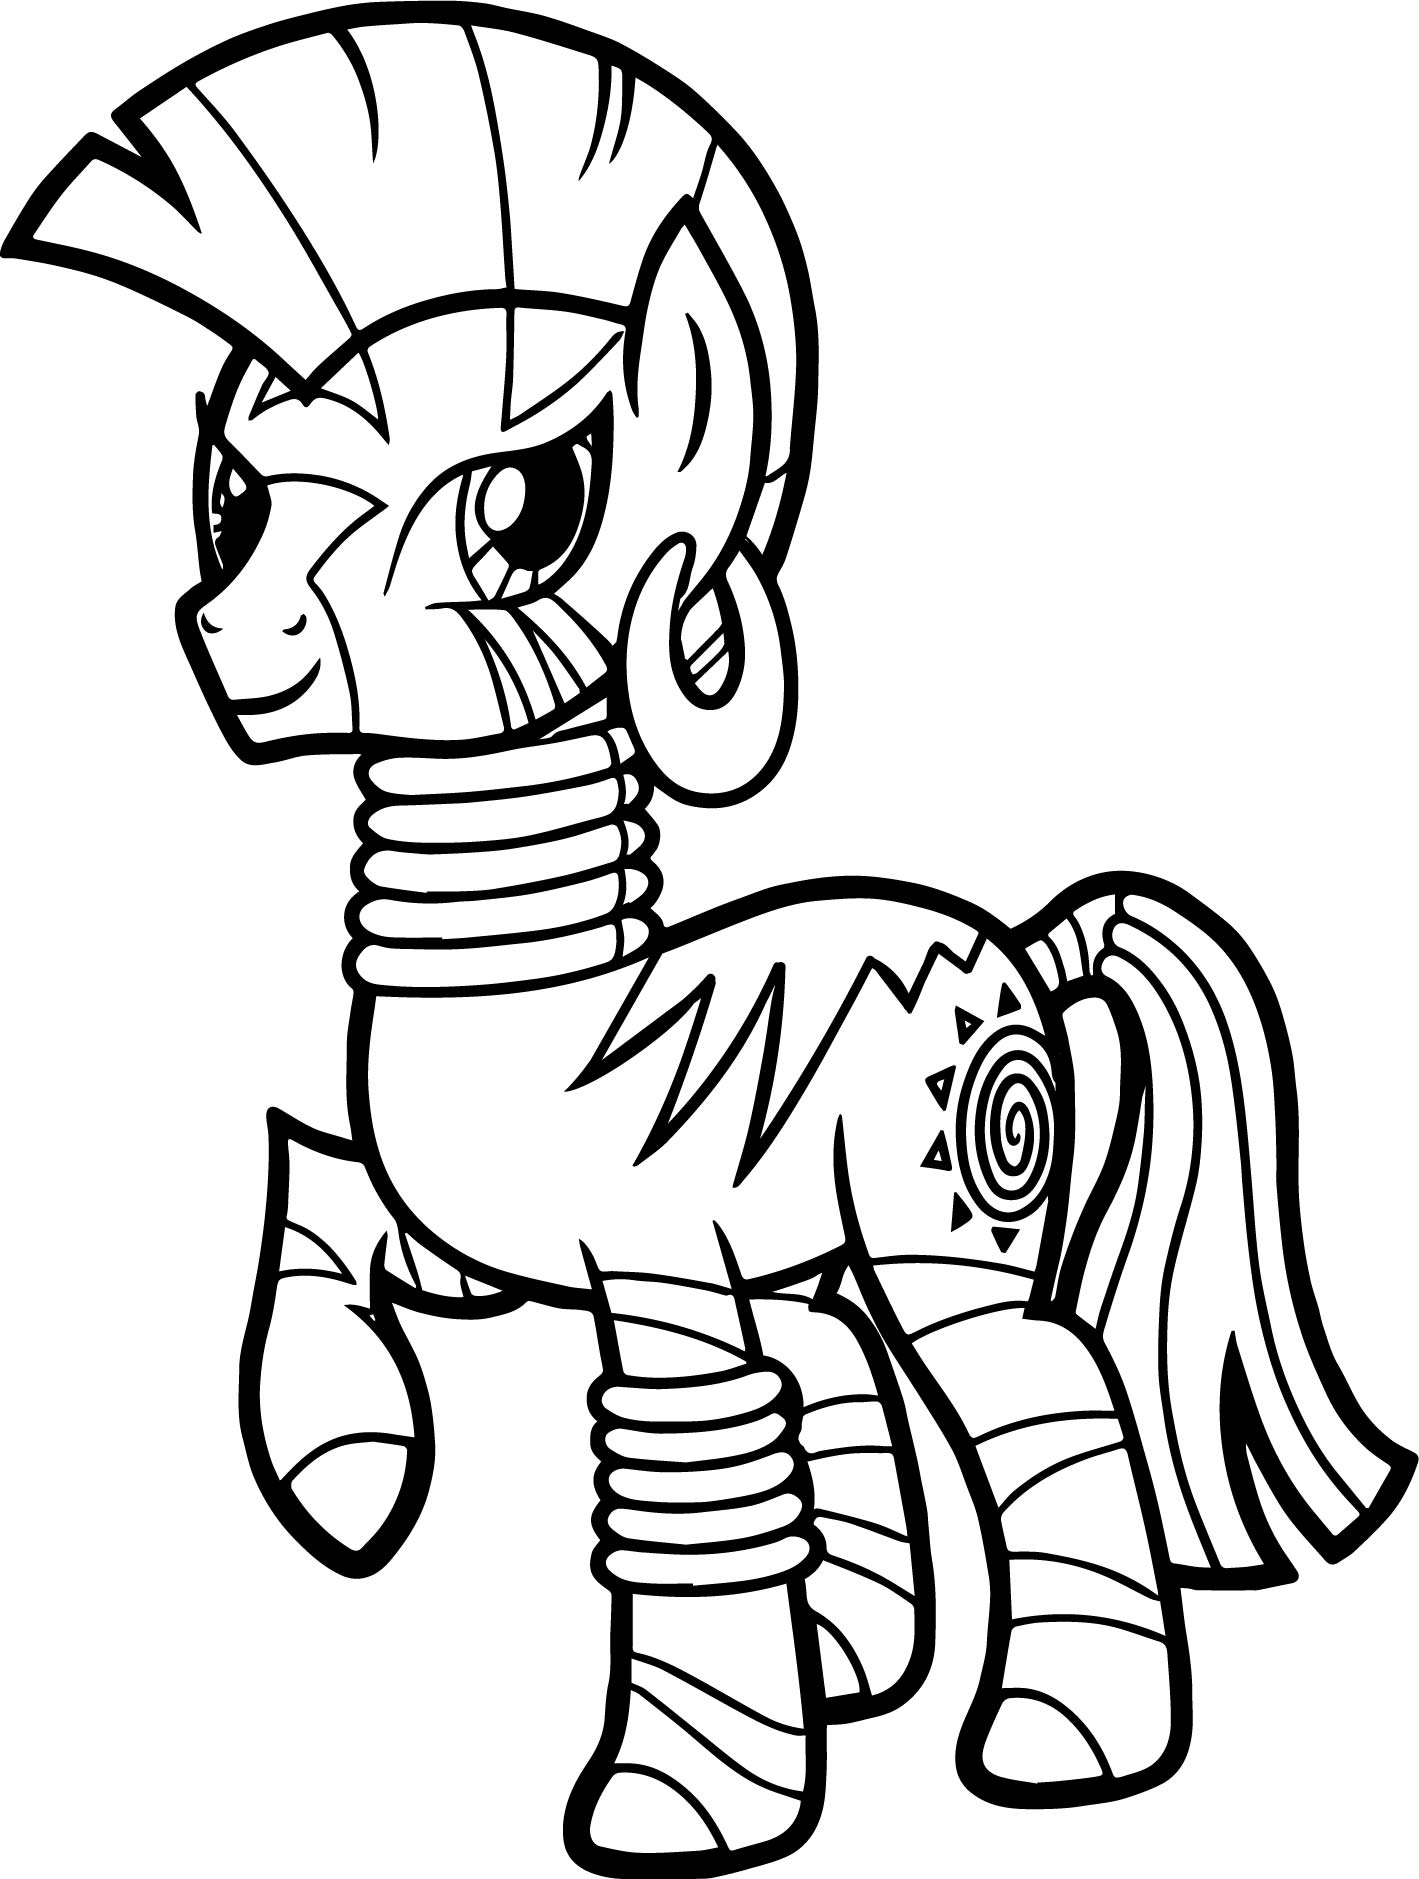 Zecora Walking Coloring Page